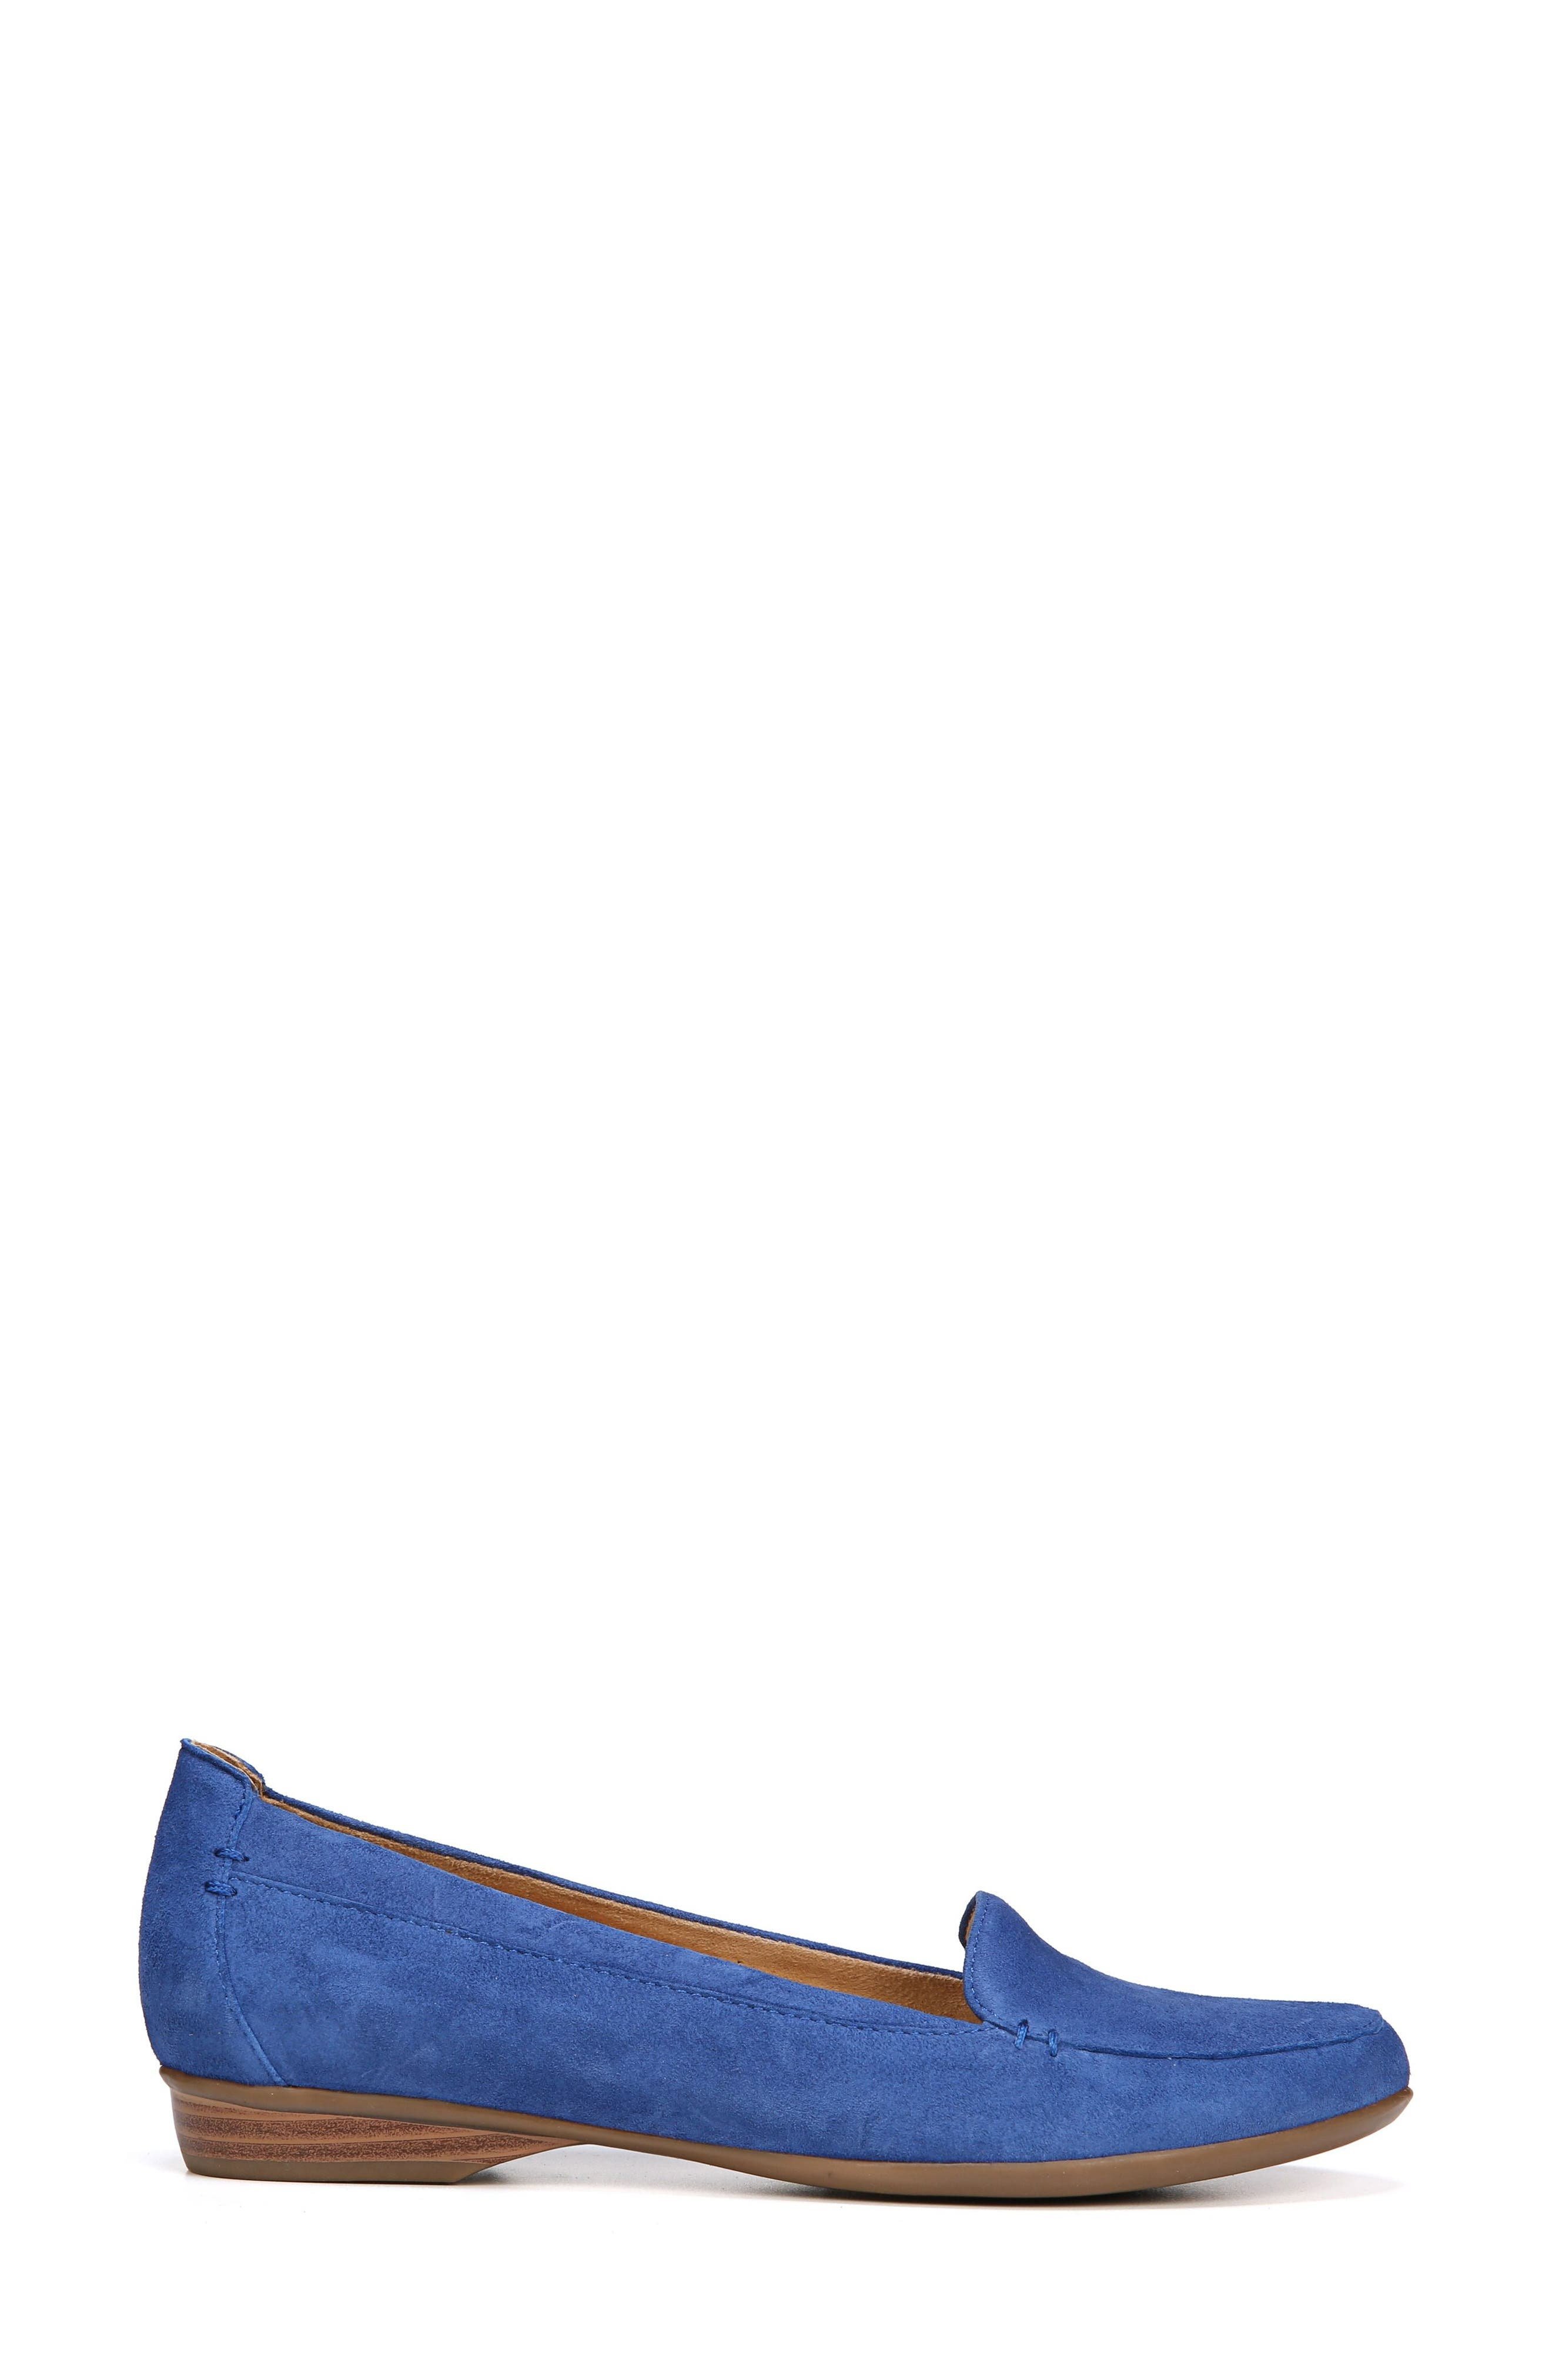 NATURALIZER, 'Saban' Leather Loafer, Alternate thumbnail 3, color, FRENCH BLUE SUEDE